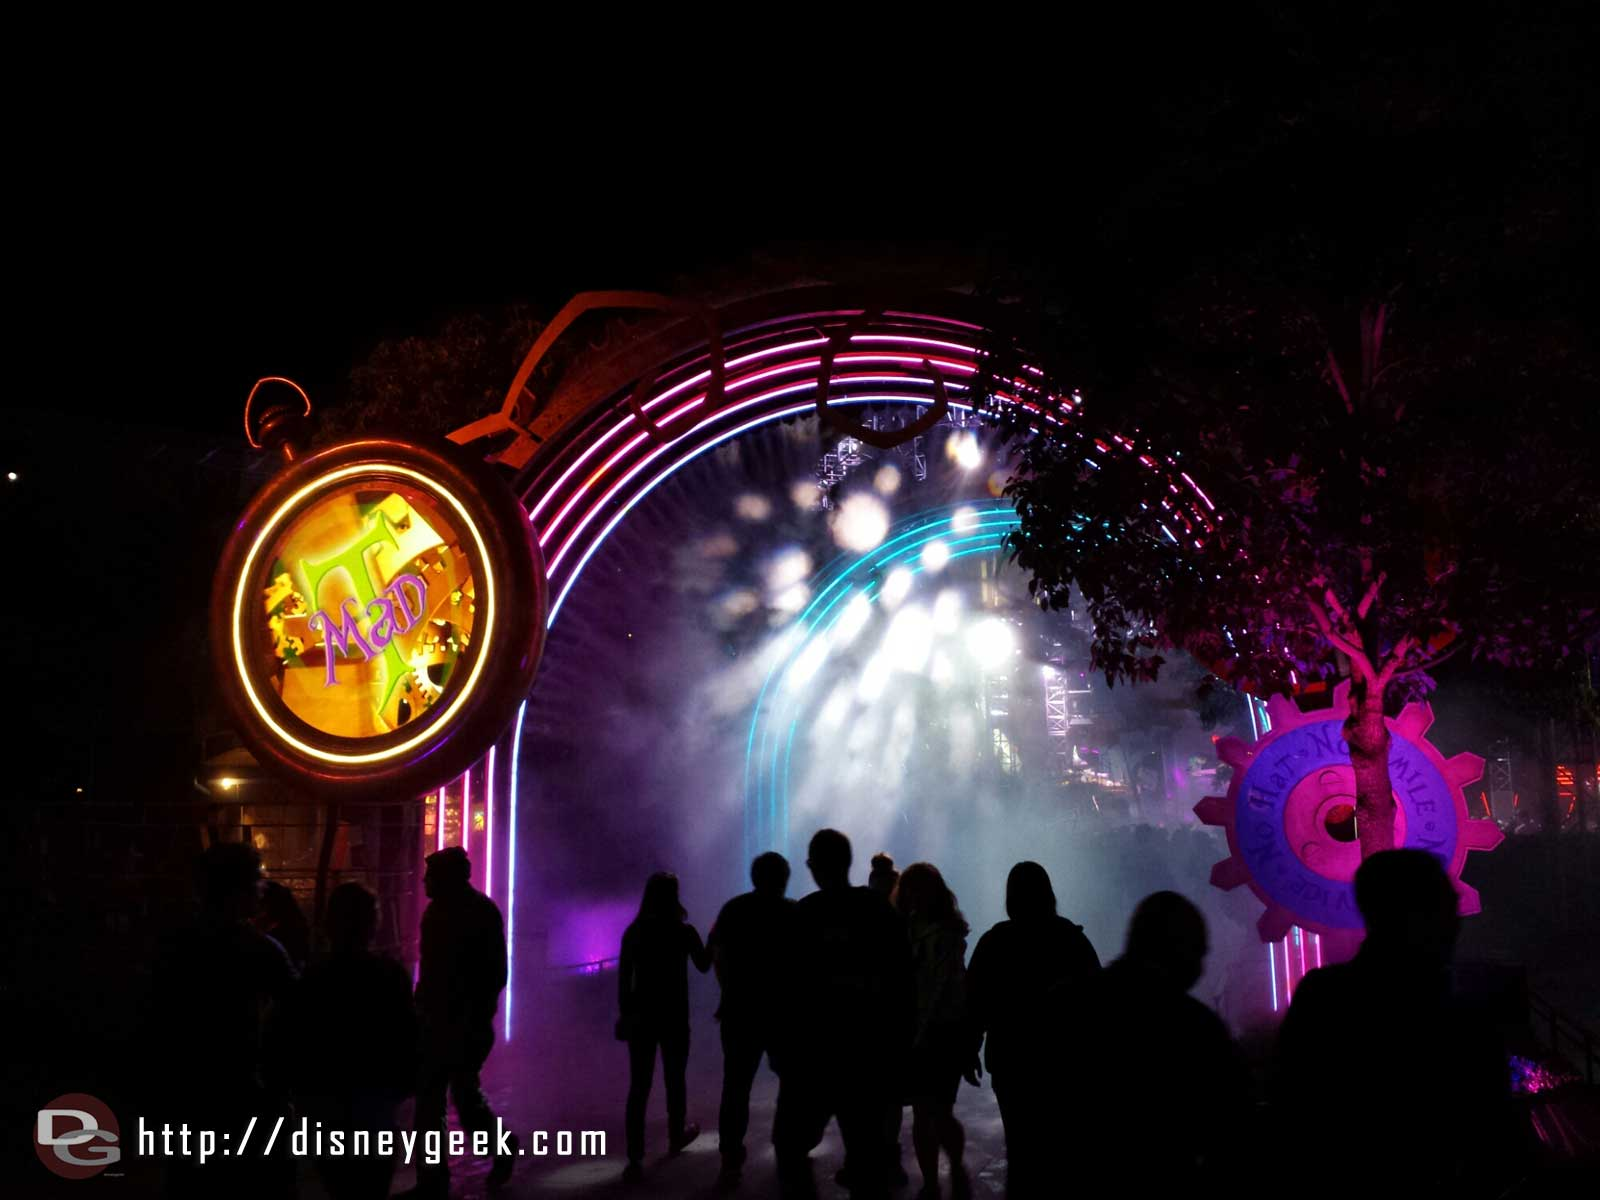 Entering the #MadTParty area of Hollywood Land